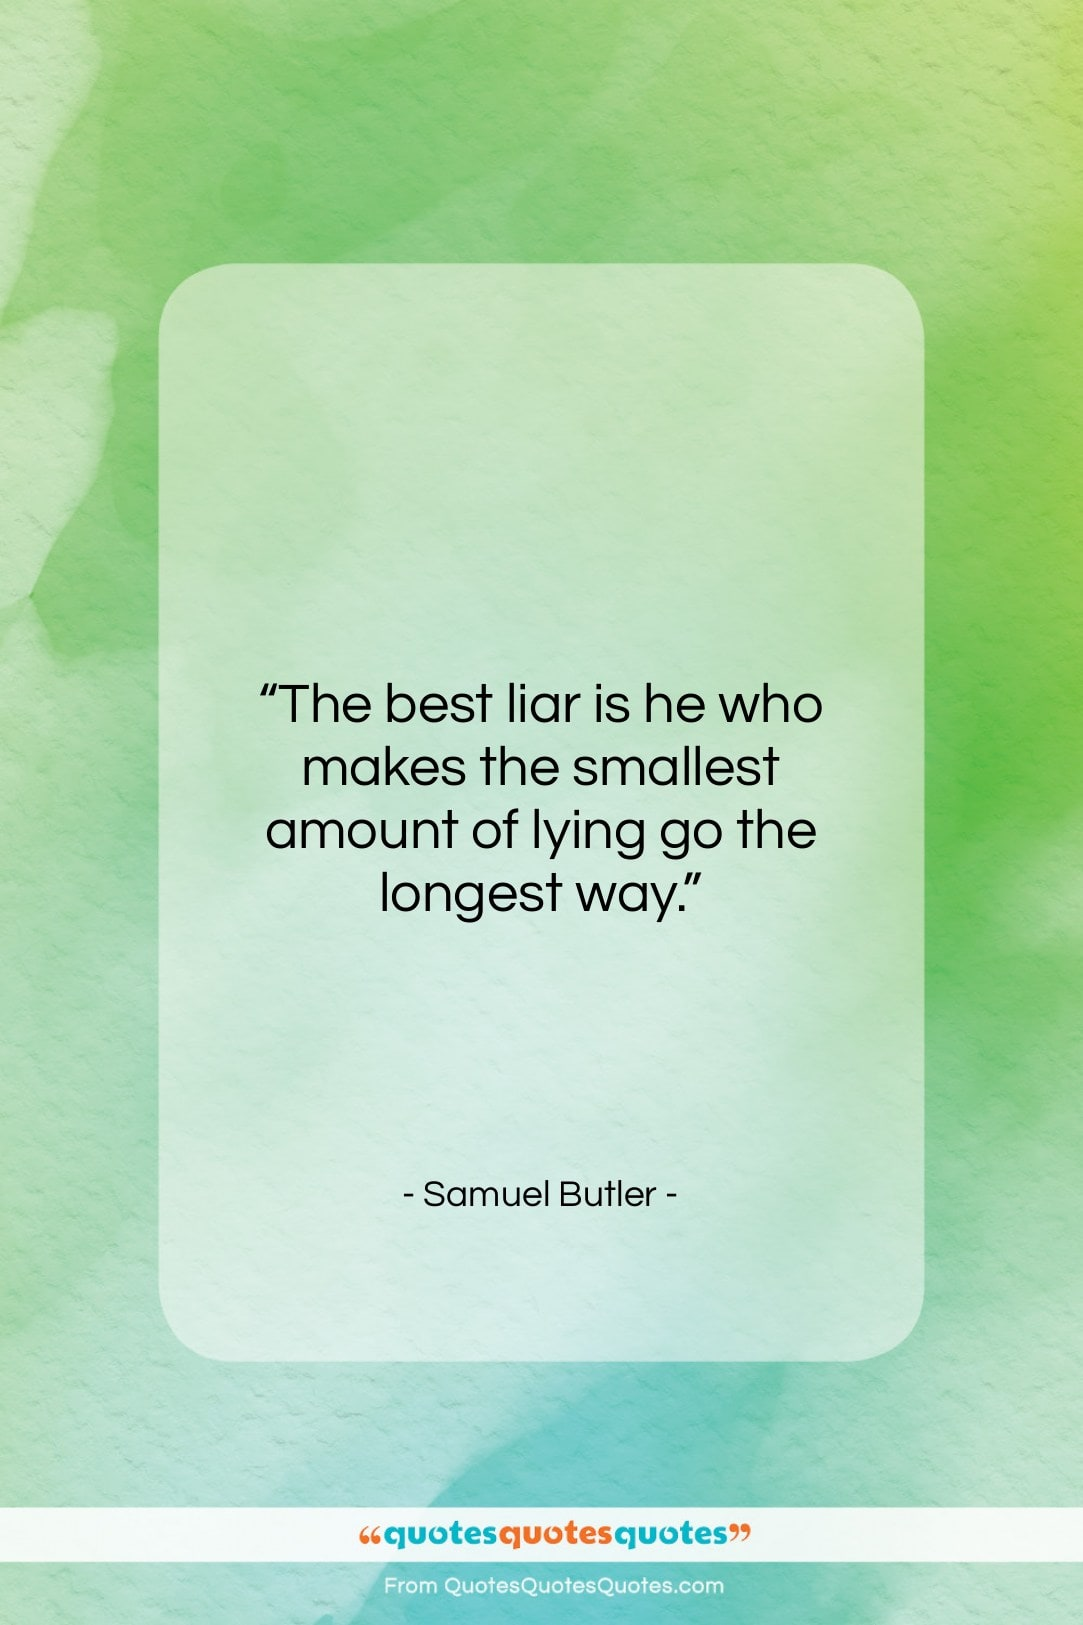 """Samuel Butler quote: """"The best liar is he who makes…""""- at QuotesQuotesQuotes.com"""